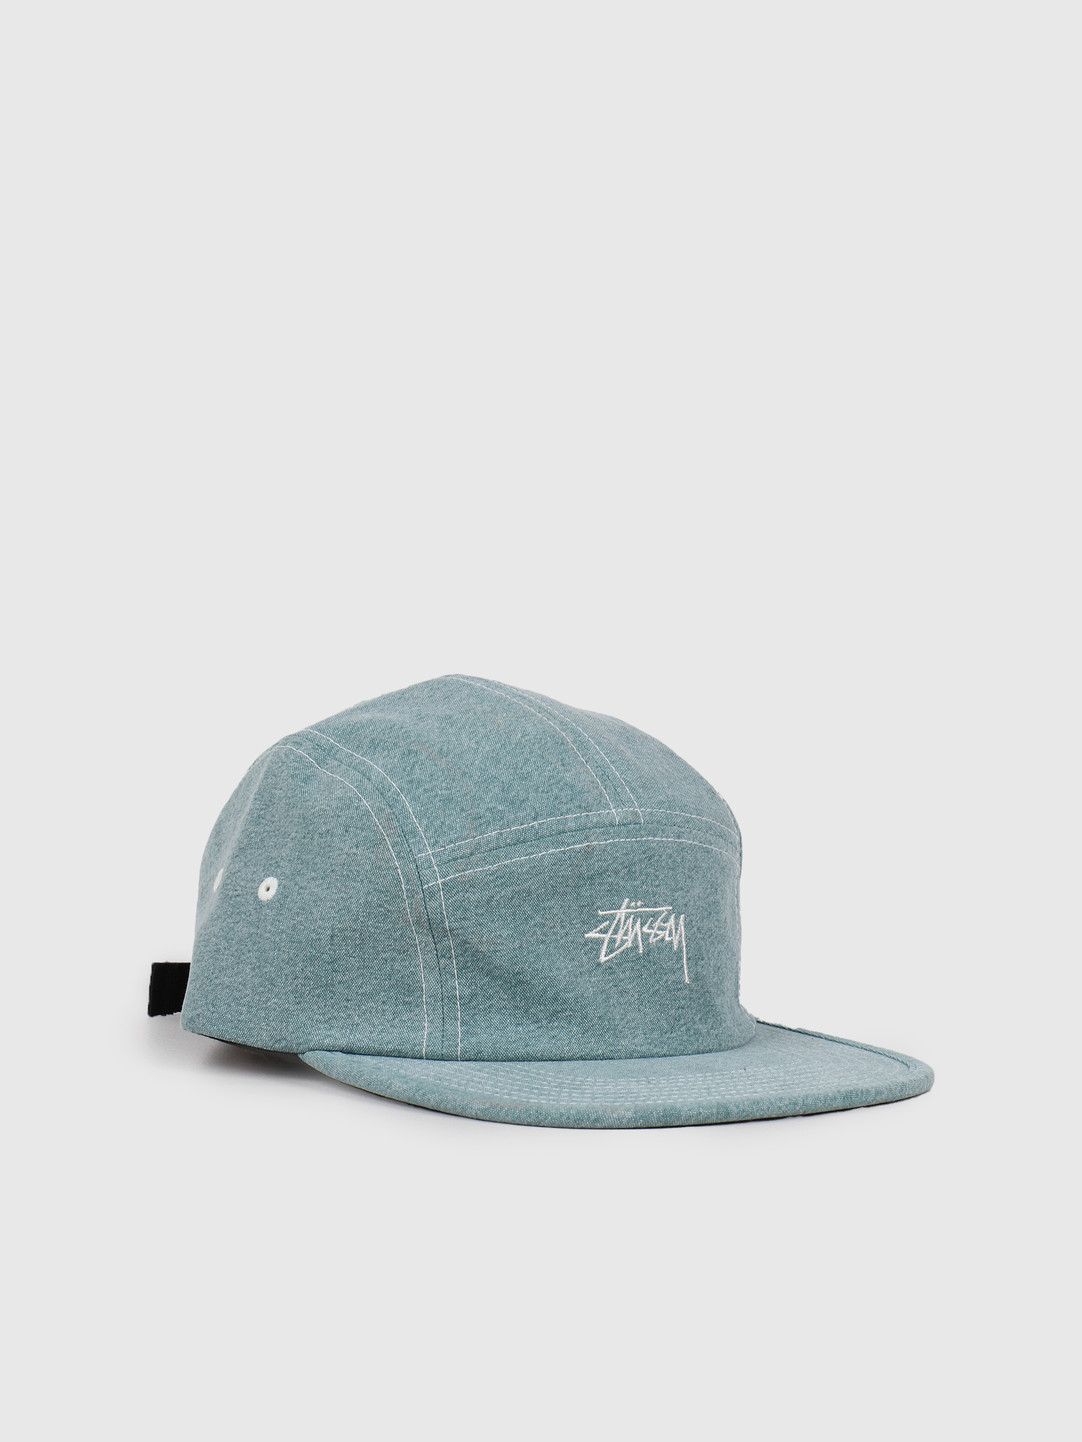 Stussy Stussy Stock Washed Canvas Camp Cap Green 132972